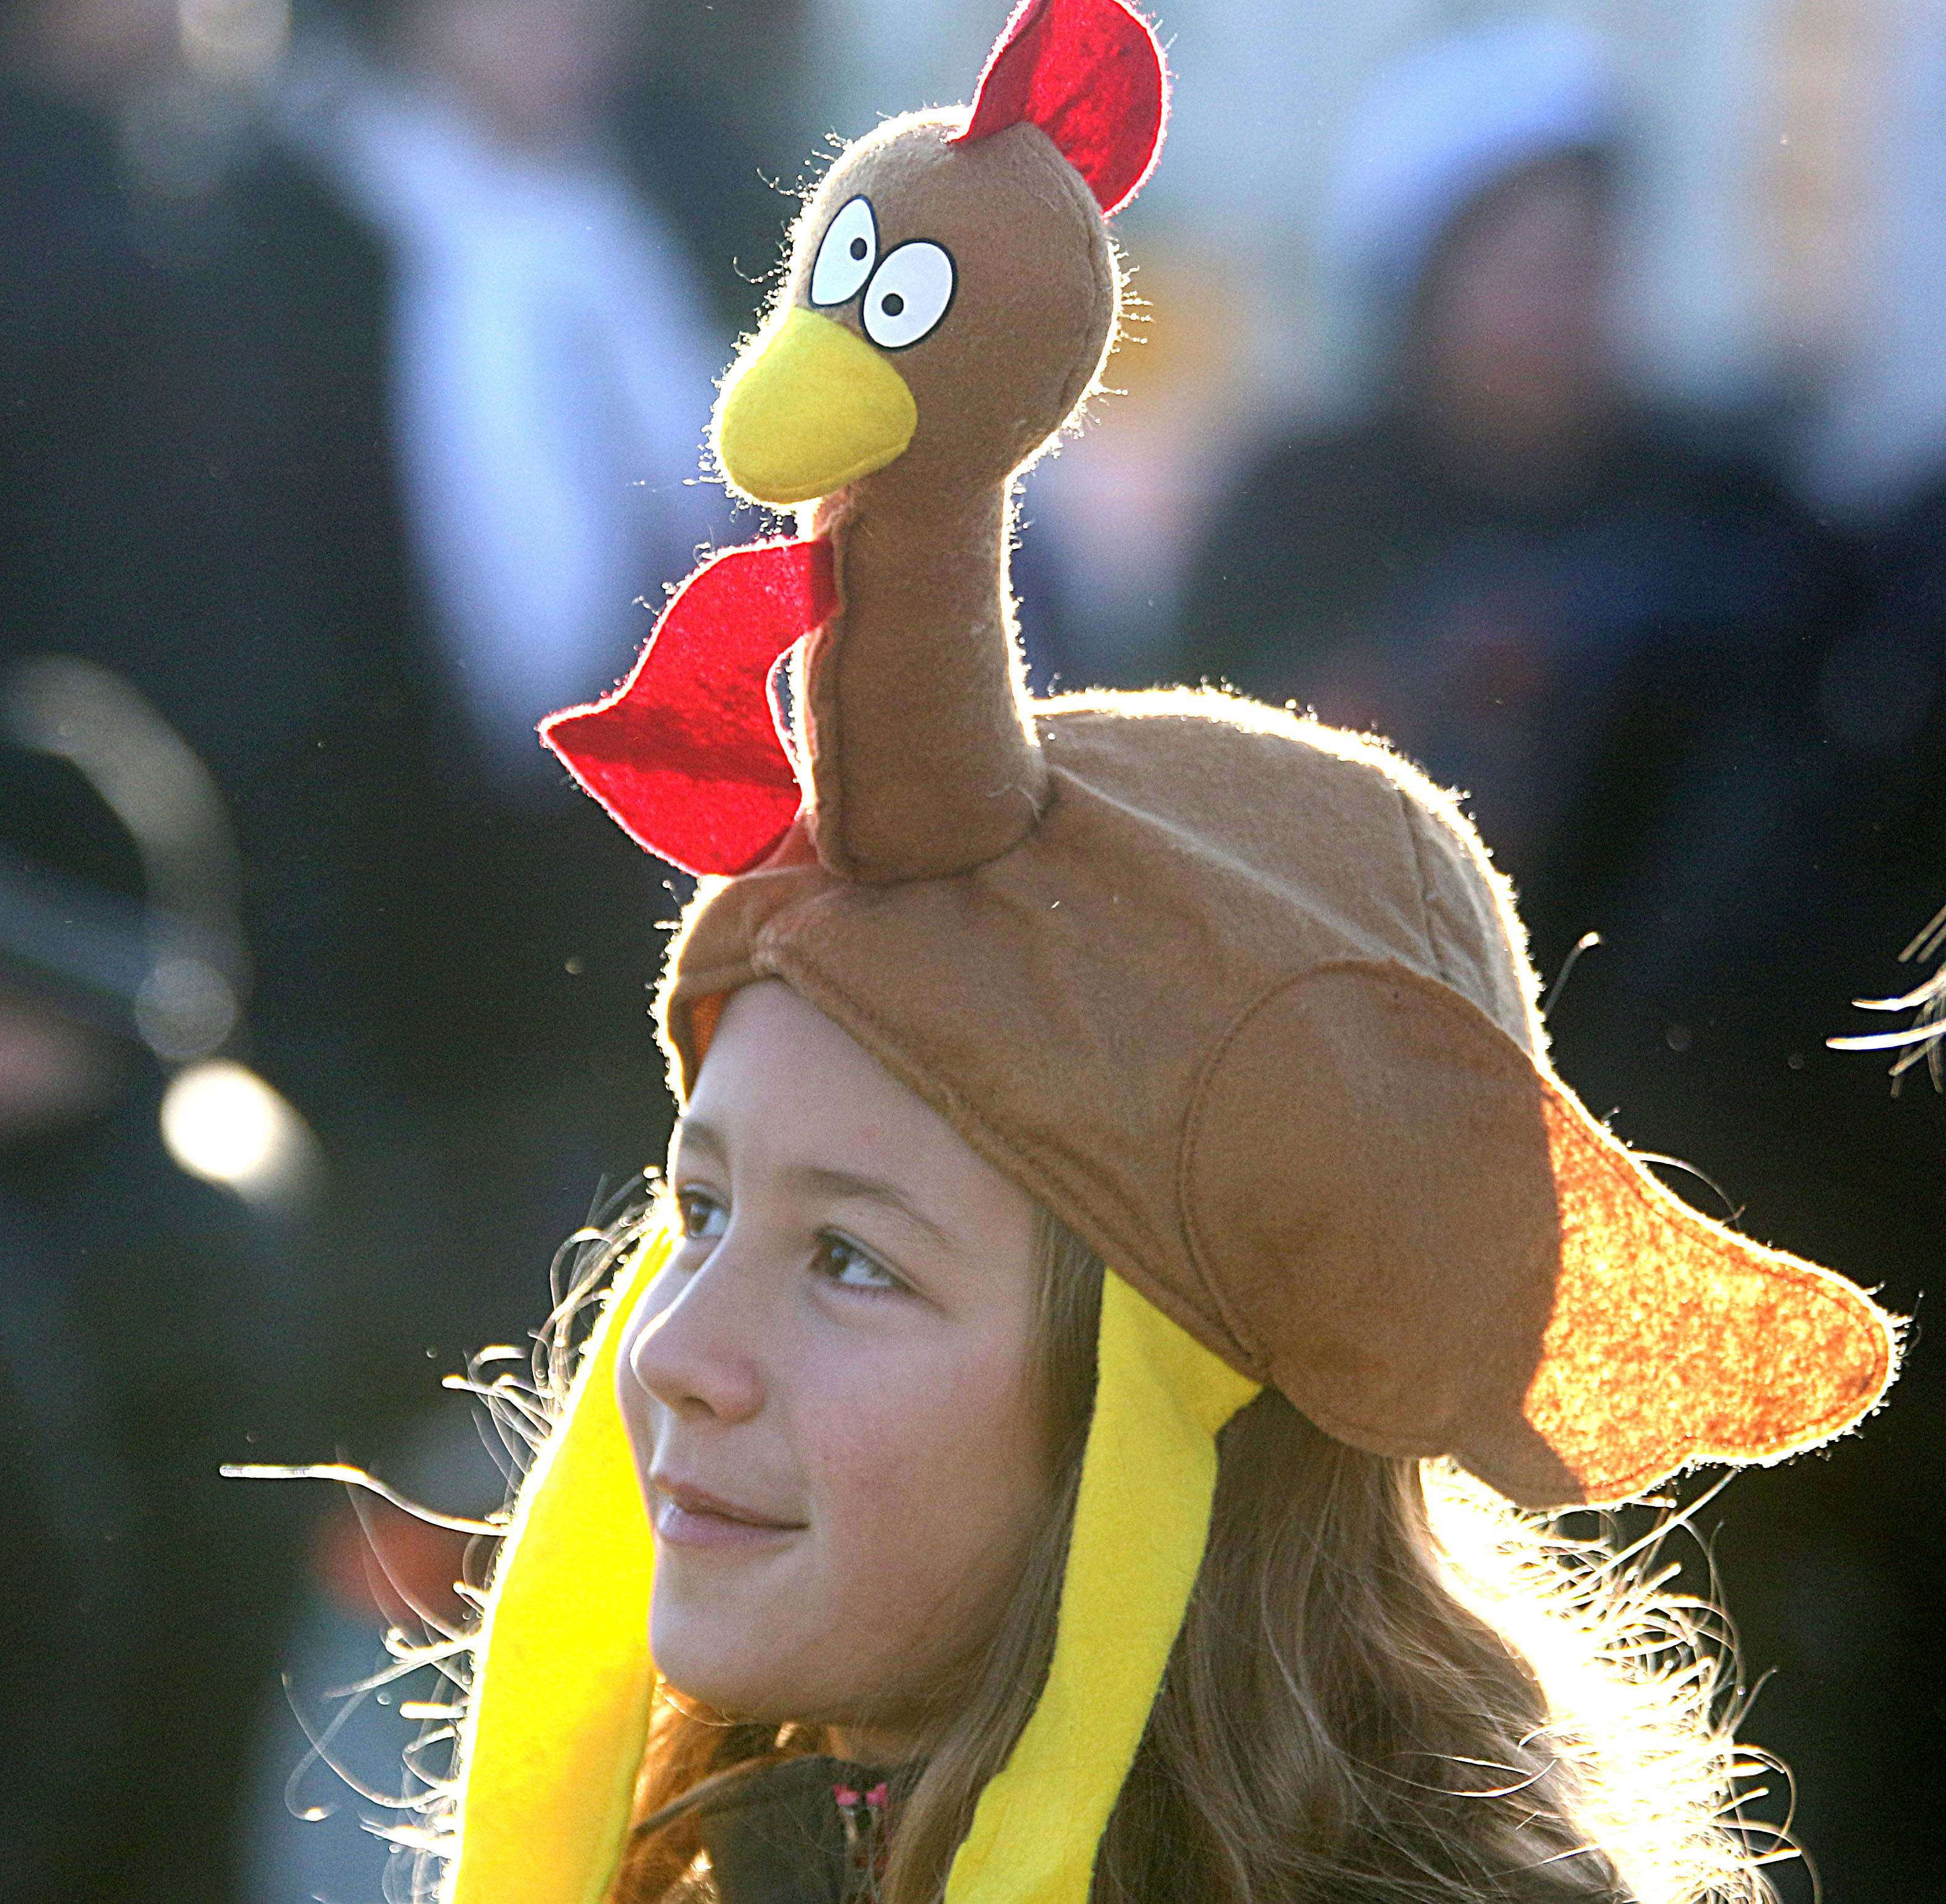 Phoebe Shorney, 10, of River Forest sports a turkey cap as she prepares to watch the 34th annual Dan Gibbons Turkey Trot in Elmhurst Thanksgiving morning.